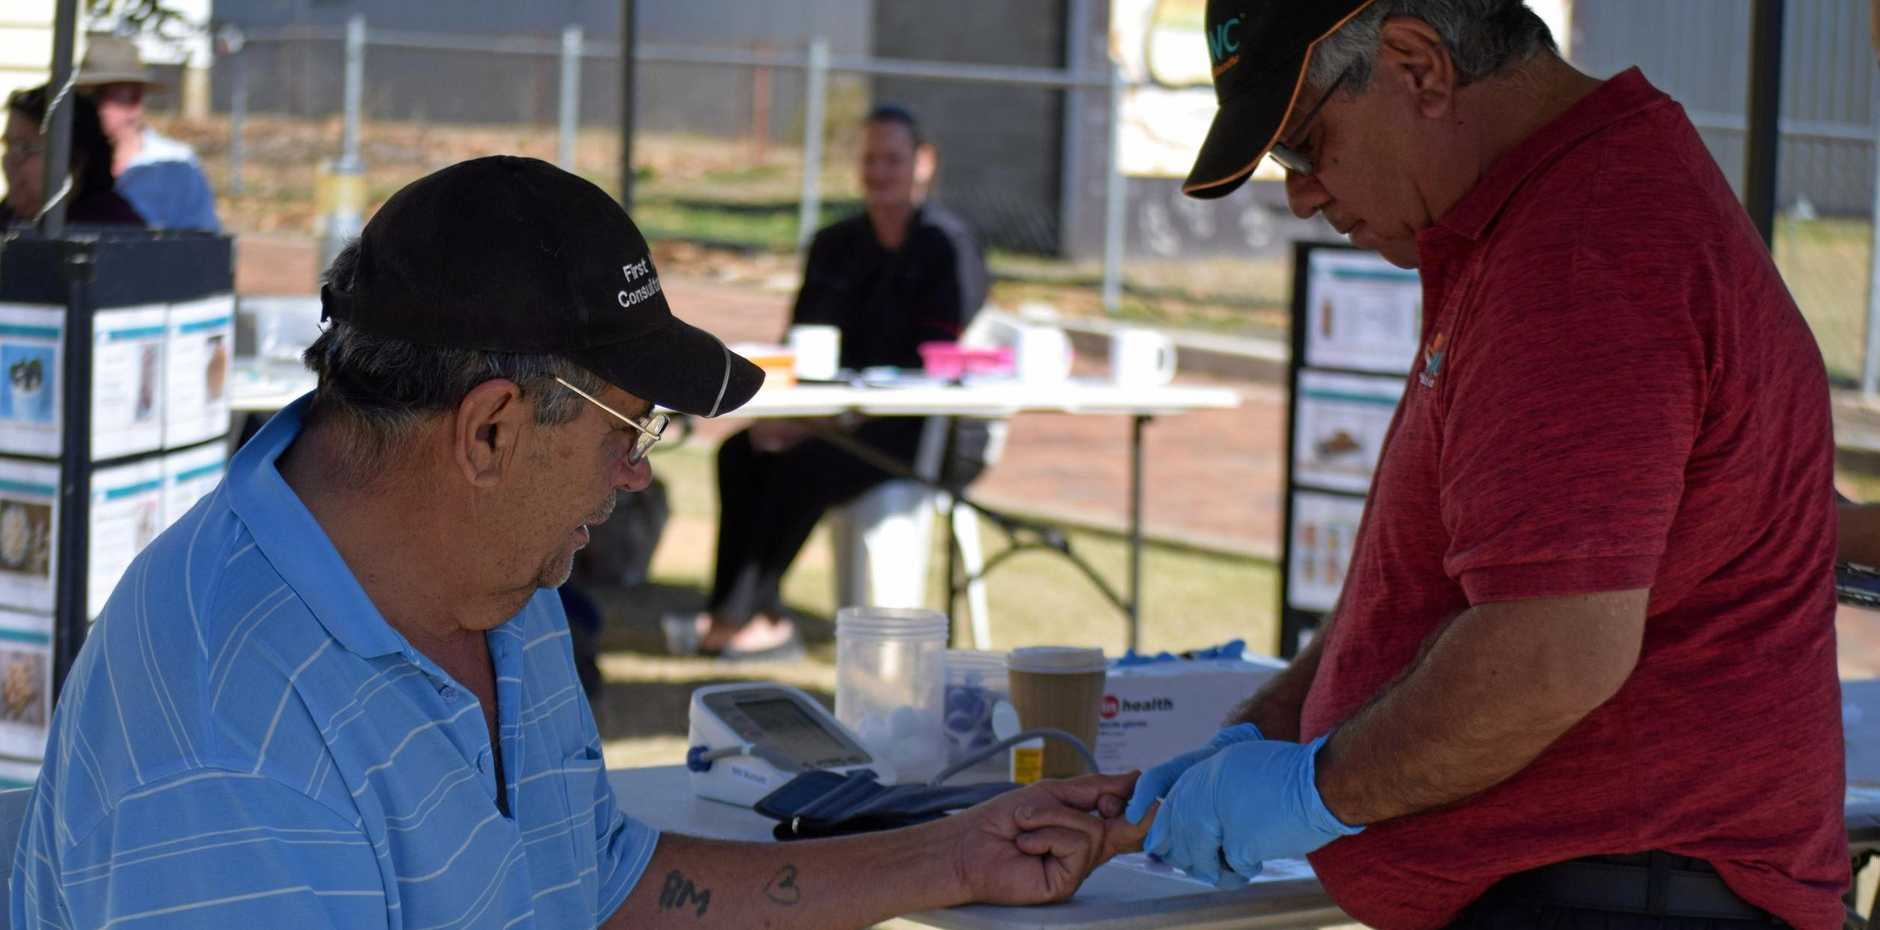 Paul Mailman receives a health check from Clem Shadford during Coffee in the Park held in Gayndah today.